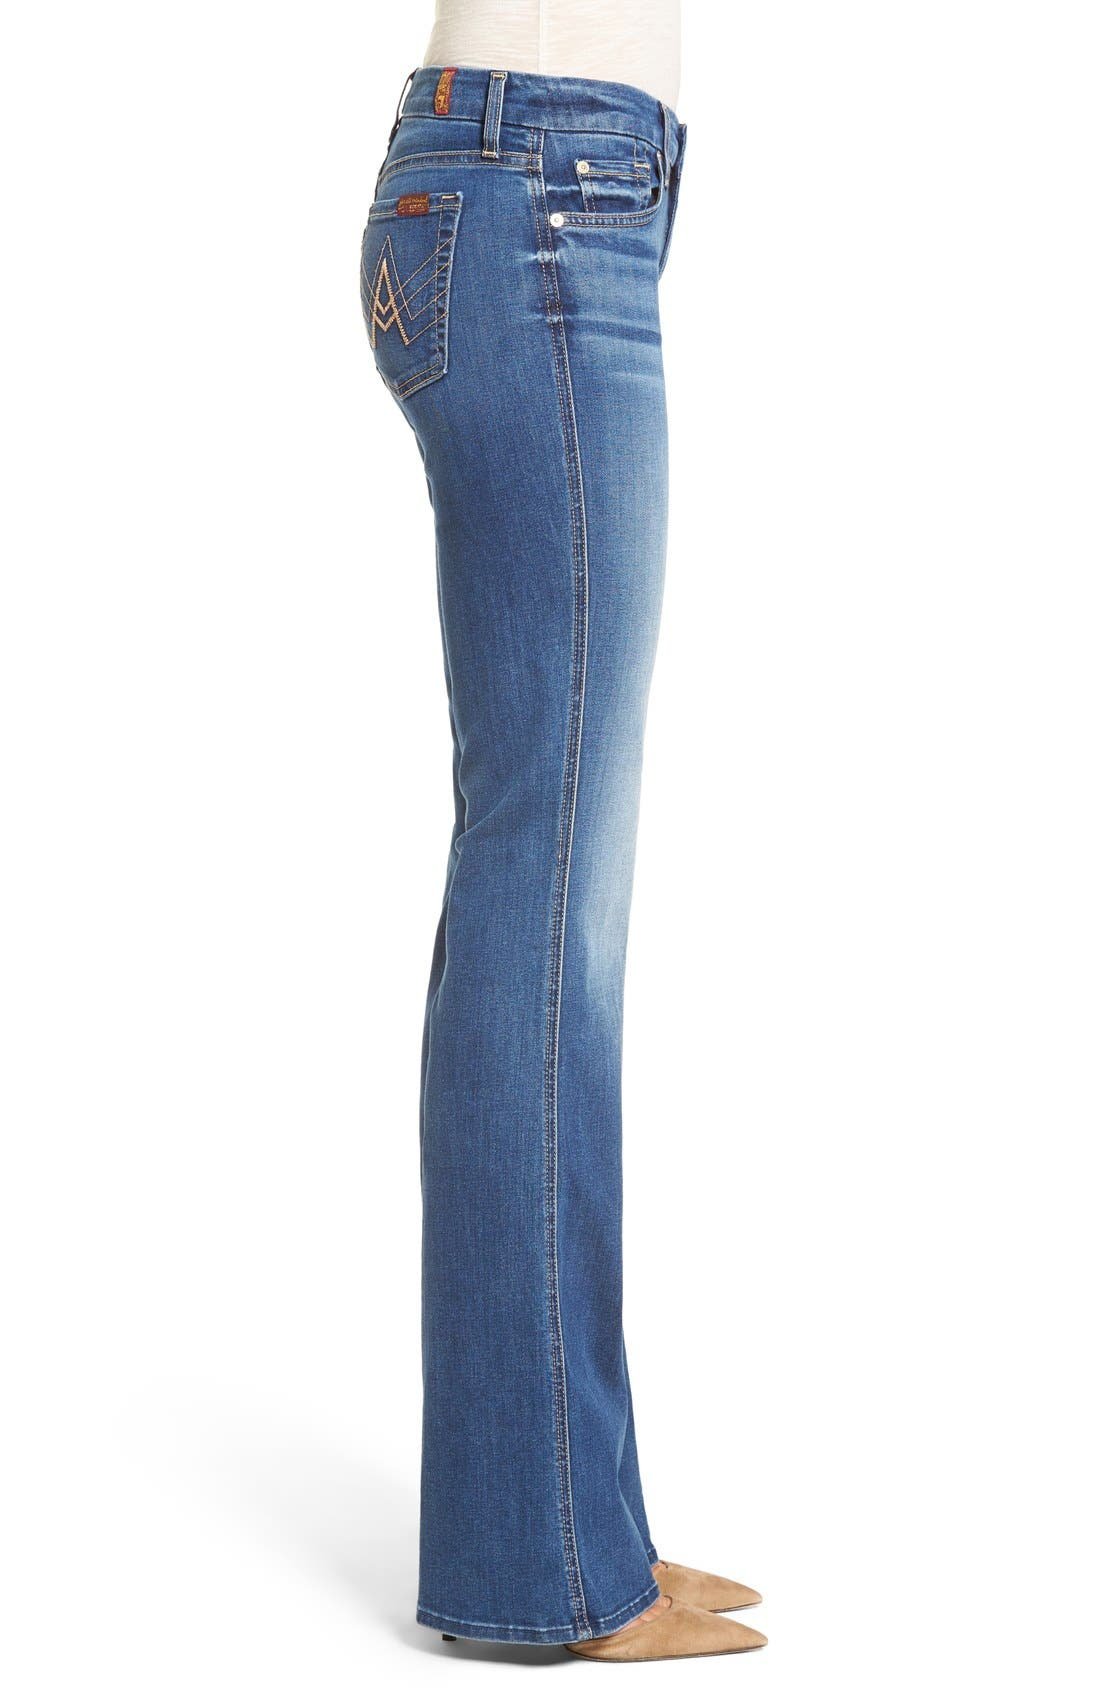 'b(air) - A Pocket' Flare Jeans,                             Alternate thumbnail 3, color,                             Reign